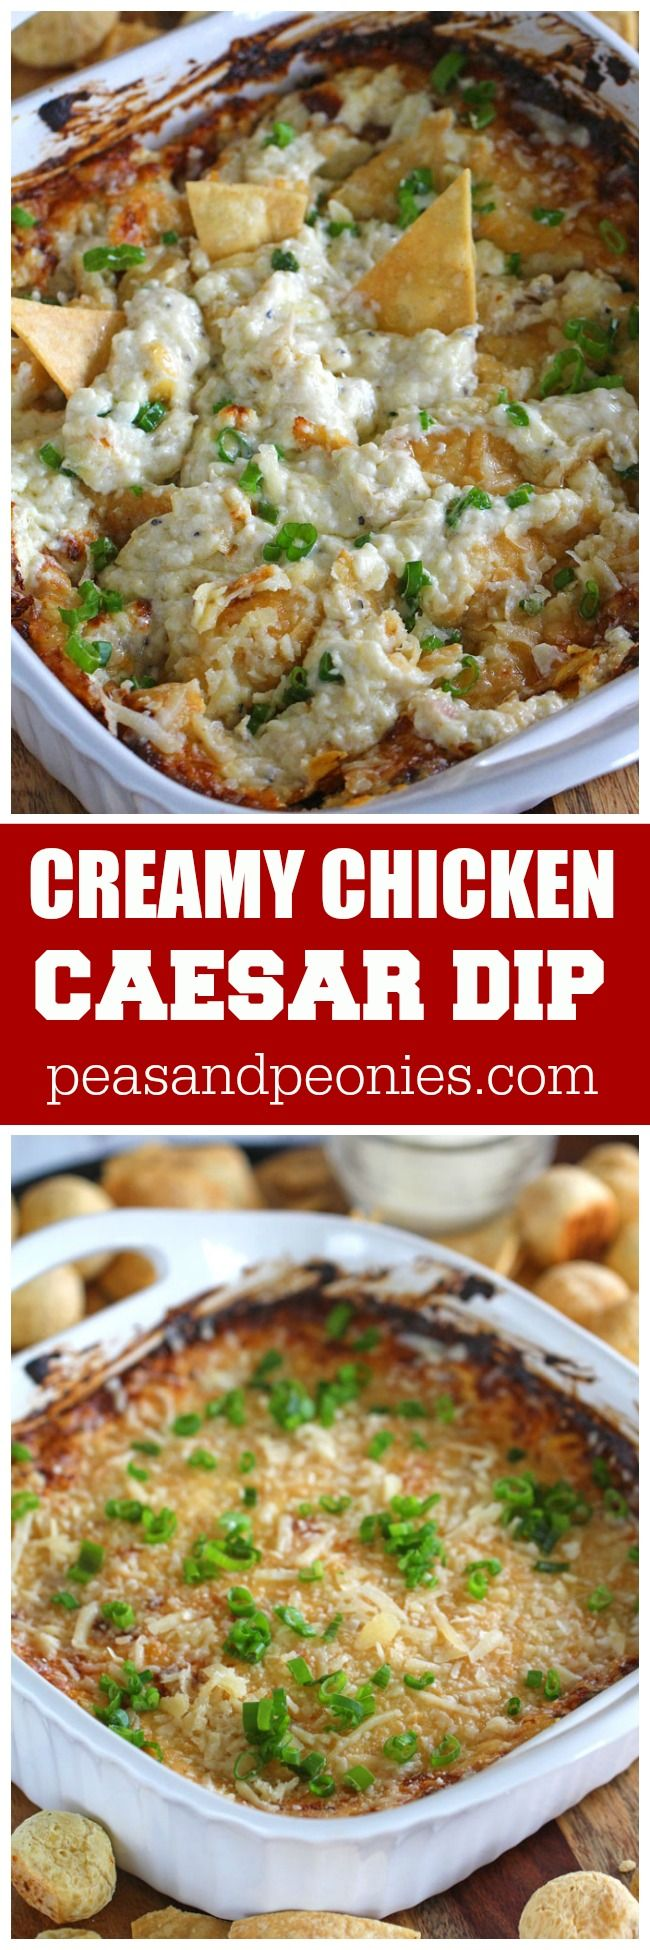 Caesar Dip made with shredded rotisserie chicken is the ultimate dip! Creamy, cheesy and hearty, the dip will be the highlight of any party! #MomBlogTourFF {ad}